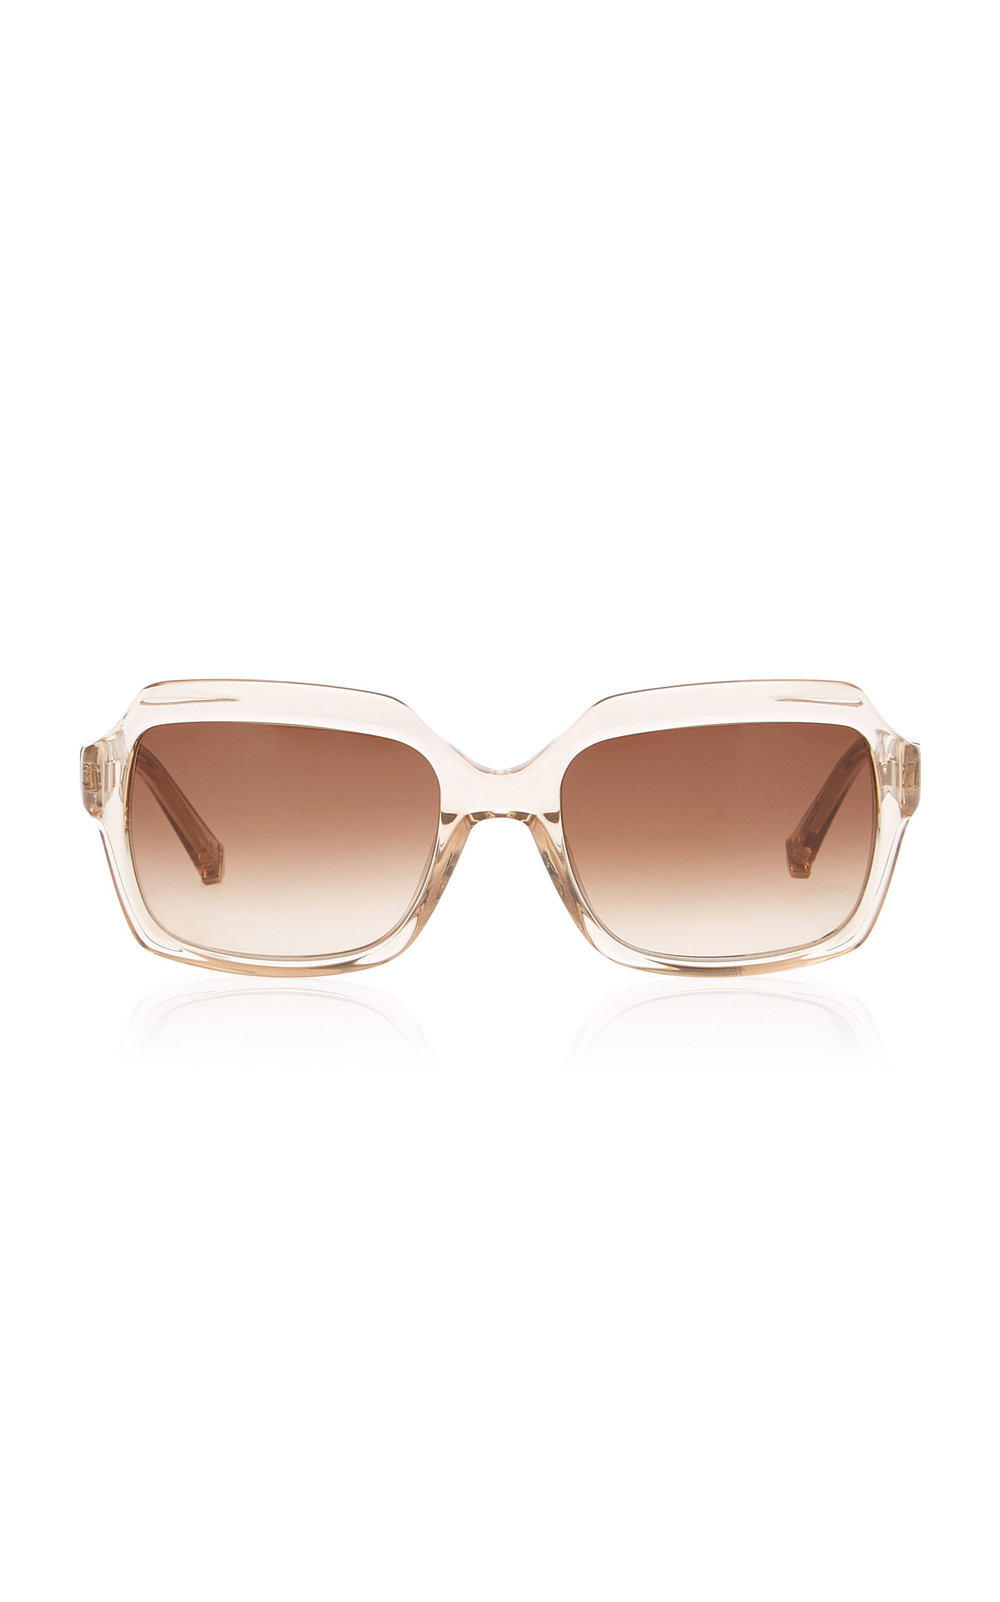 Kate Young Toni Square-Frame Acetate Sunglasses in brown